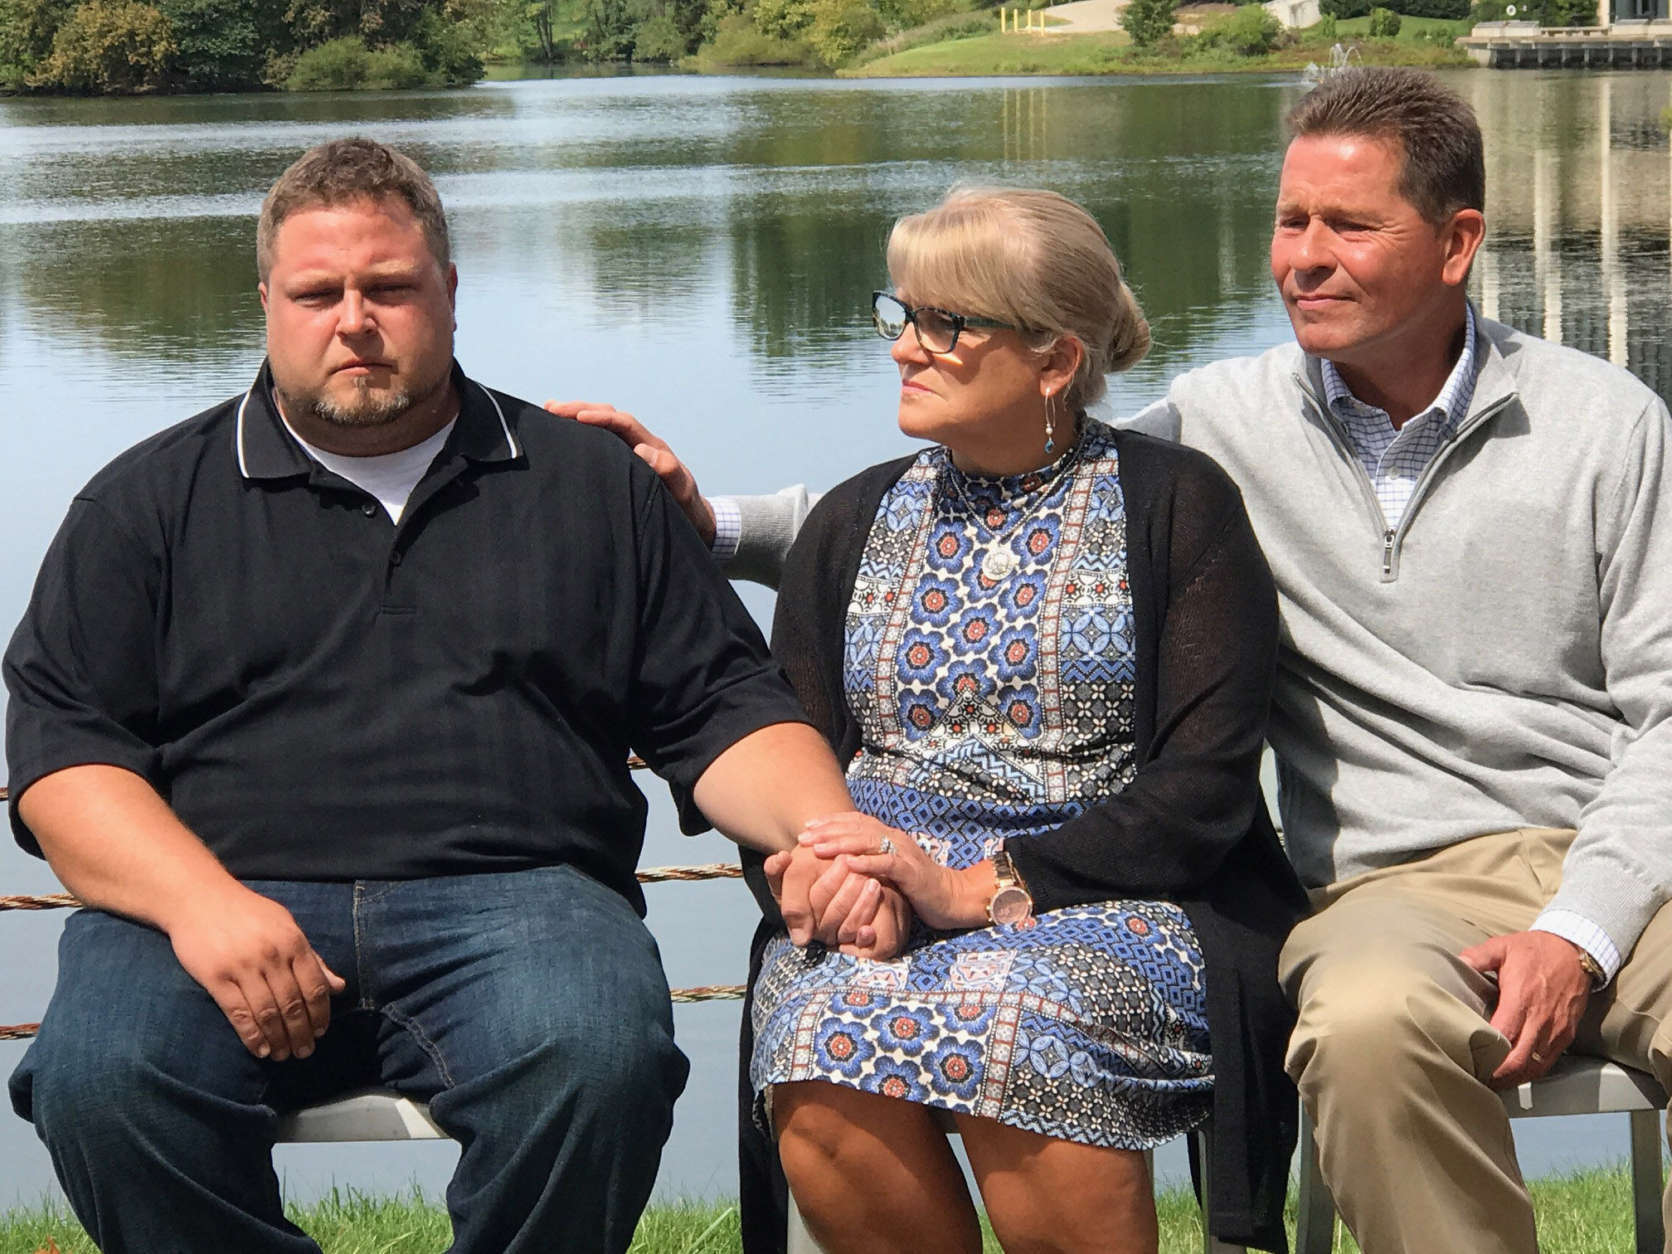 Tyler Tessier sits with Gwen and Mark Wallen during a press conference On Sept. 11, 2017 to ask for information regarding the whereabouts of Laura Wallen. The 31-year-old is four months pregnant and has been missing for more than a week. (WTOP/Megan Cloherty)